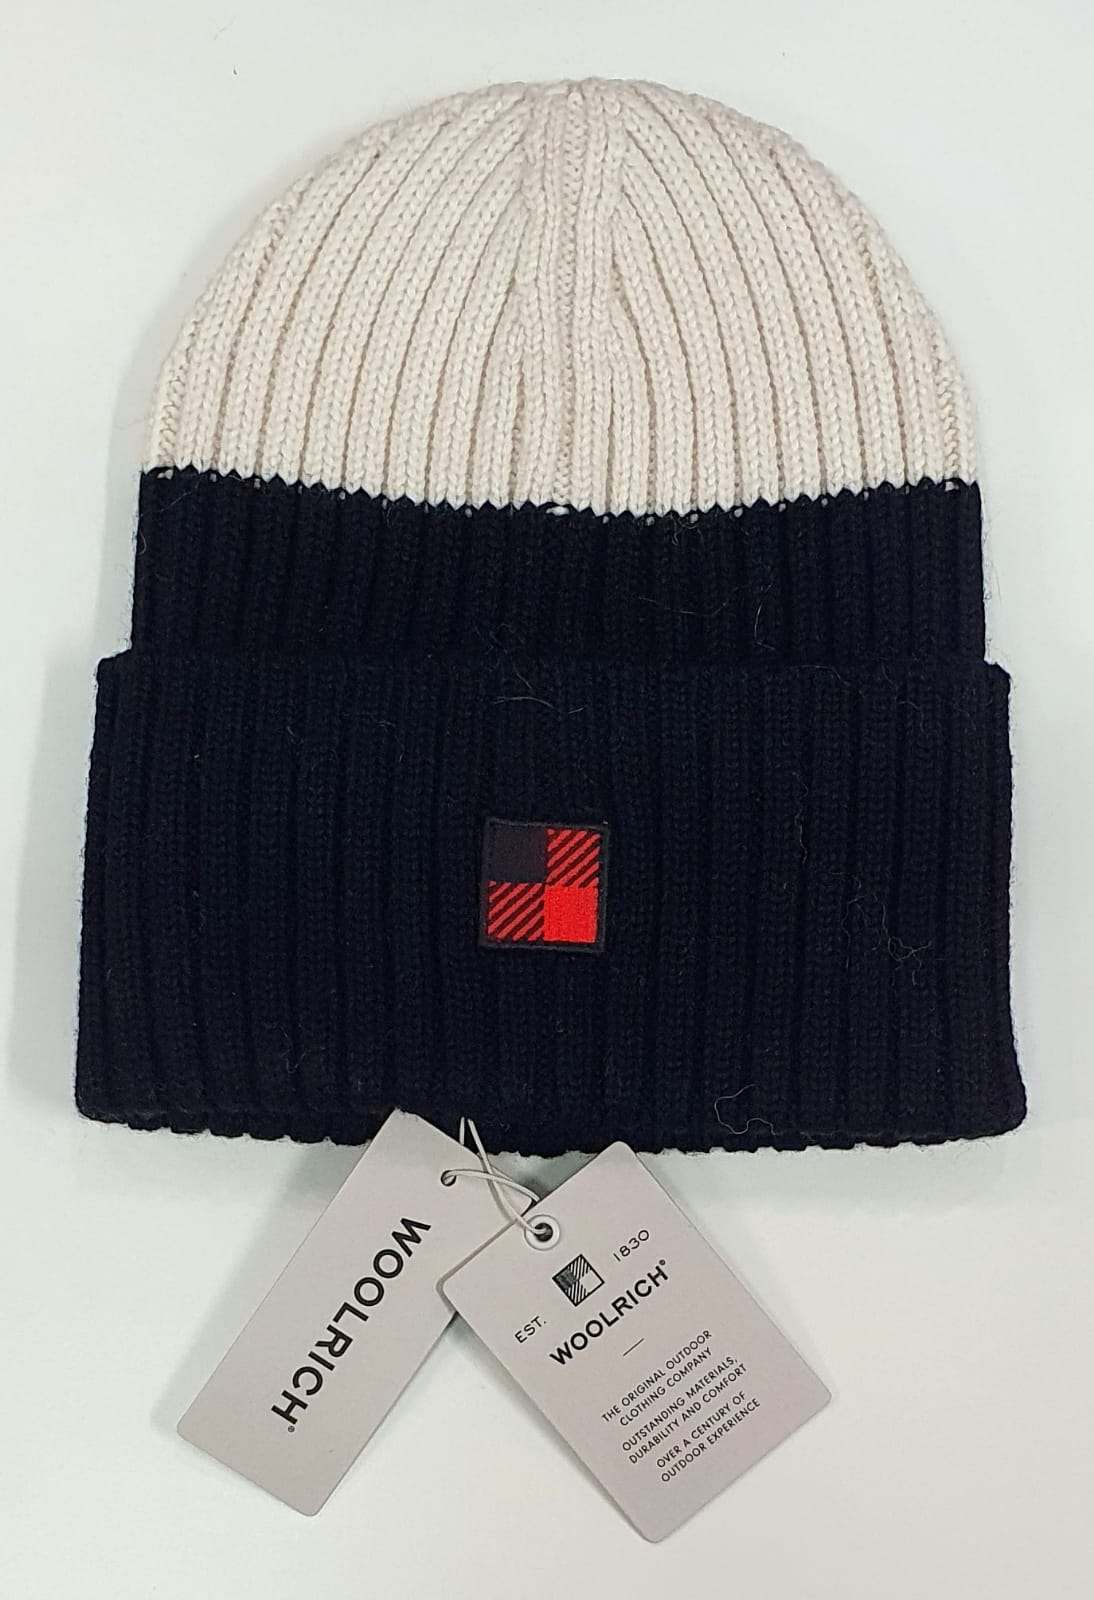 Woolrich cappello in lana nero bianco